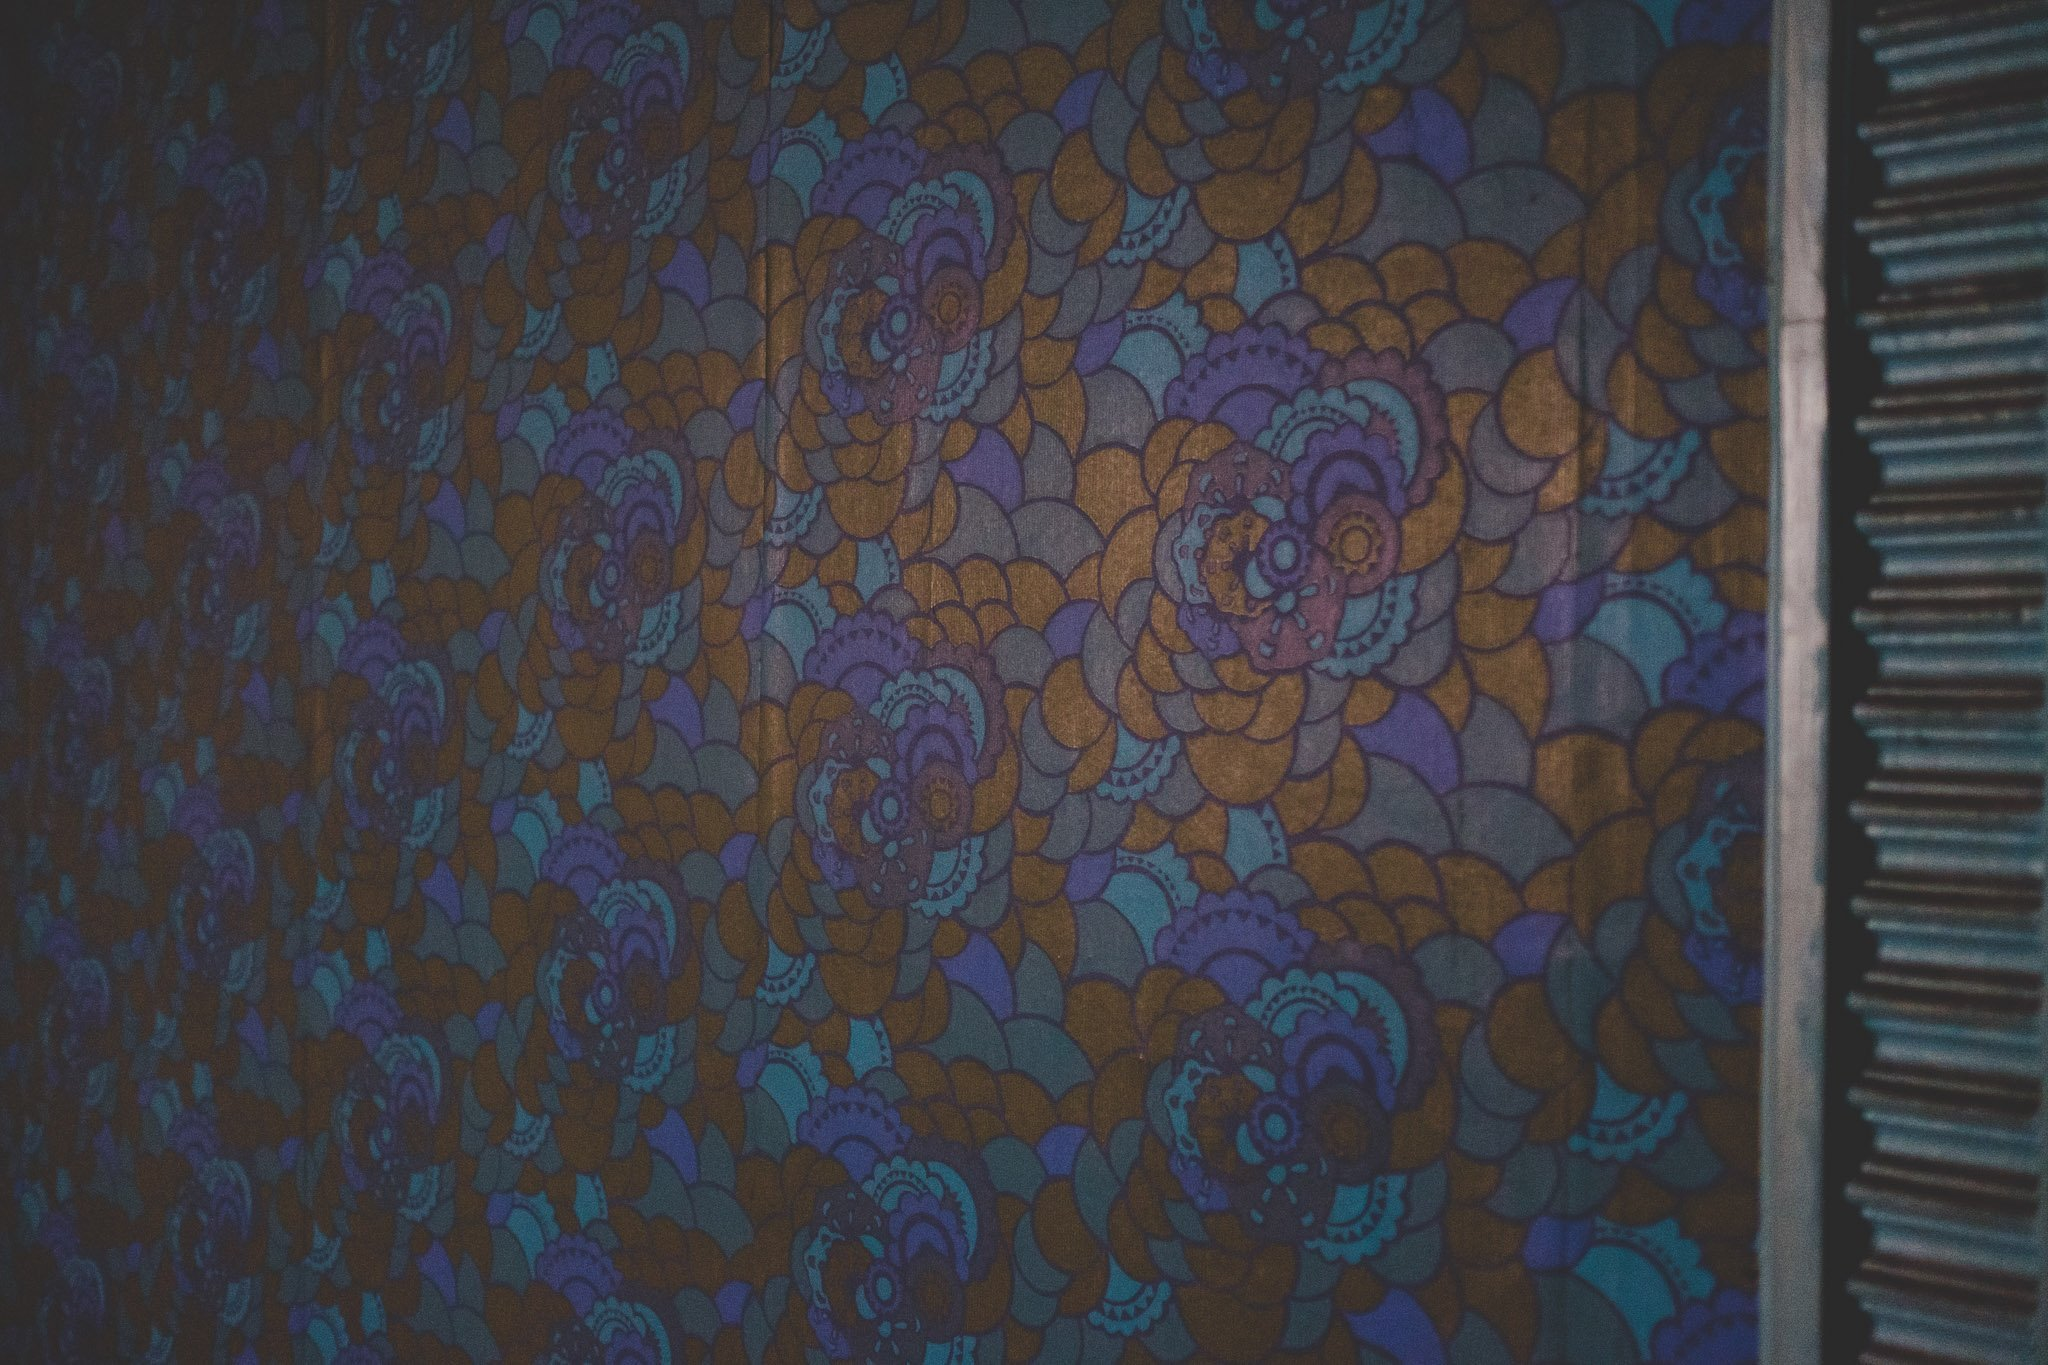 Detail of flowered wallpaper at Abbeydale Picture House in Sheffield